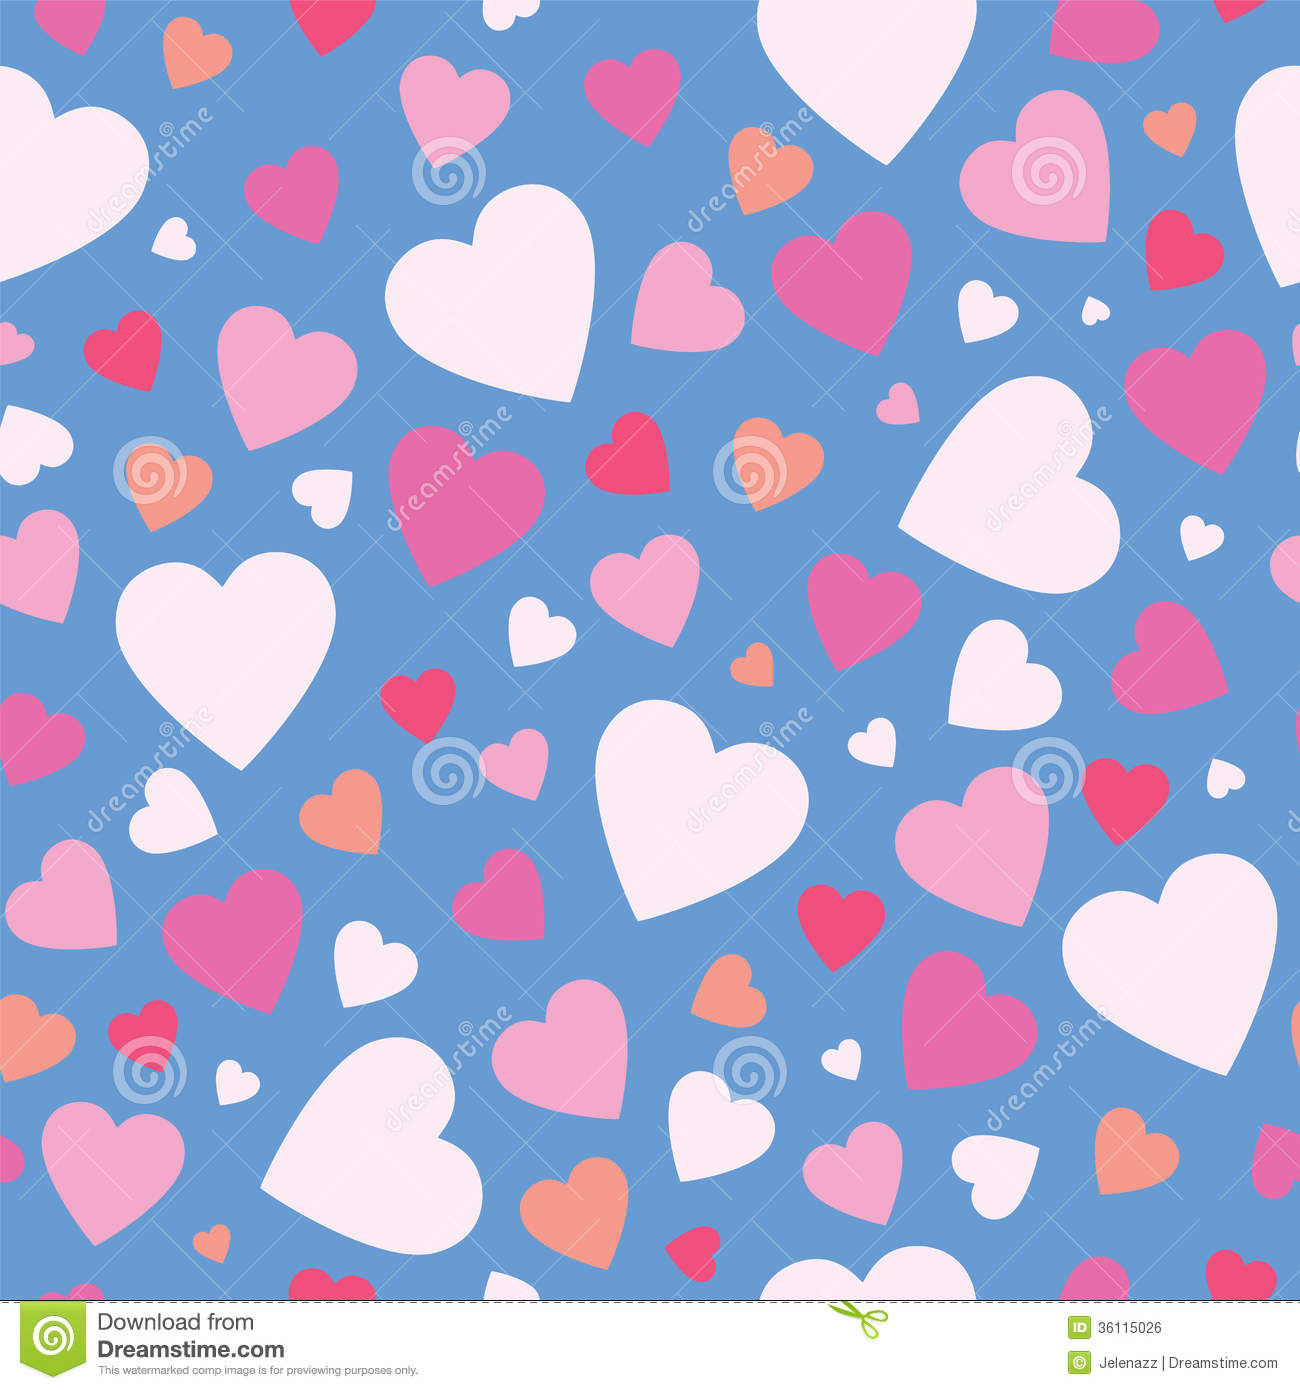 Cute Hearts Background Royalty Free Stock Image - Image ...